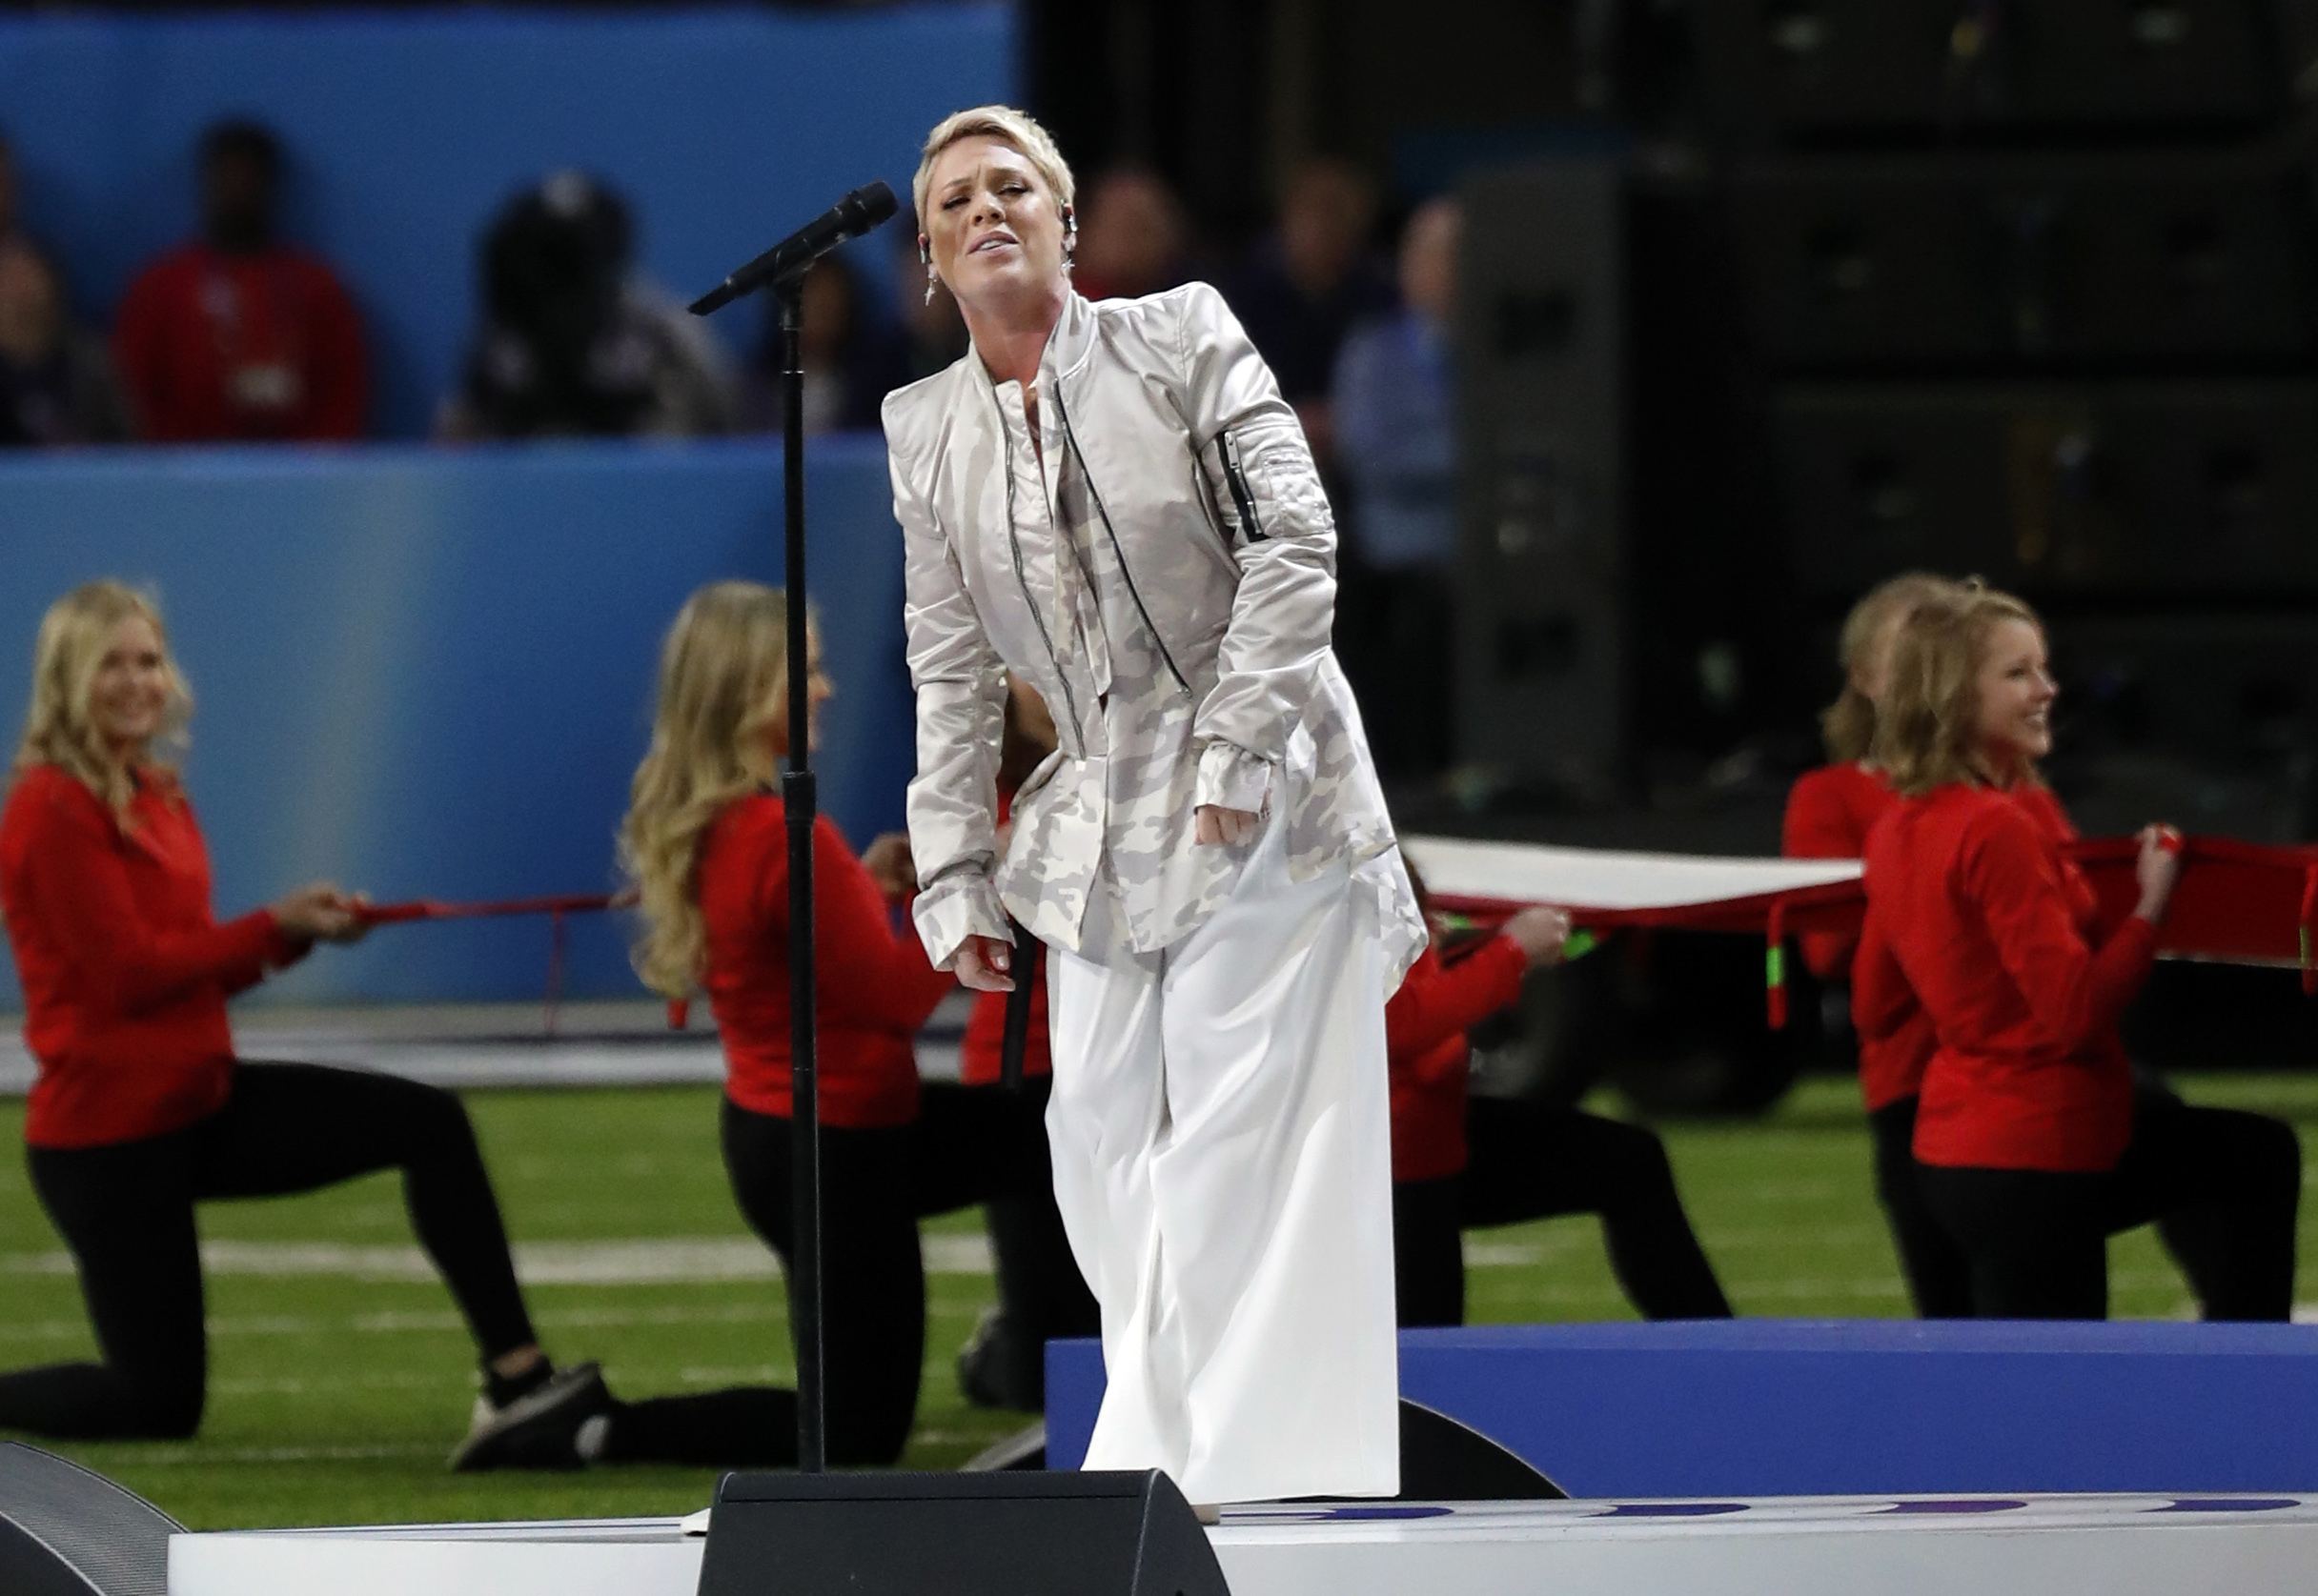 <div class='meta'><div class='origin-logo' data-origin='AP'></div><span class='caption-text' data-credit='AP Photo/Tony Gutierrez'>Pink performs the National Anthem, before the NFL Super Bowl 52 football game between the Philadelphia Eagles and the New England Patriots, Sunday, Feb. 4, 2018, in Minneapolis.</span></div>